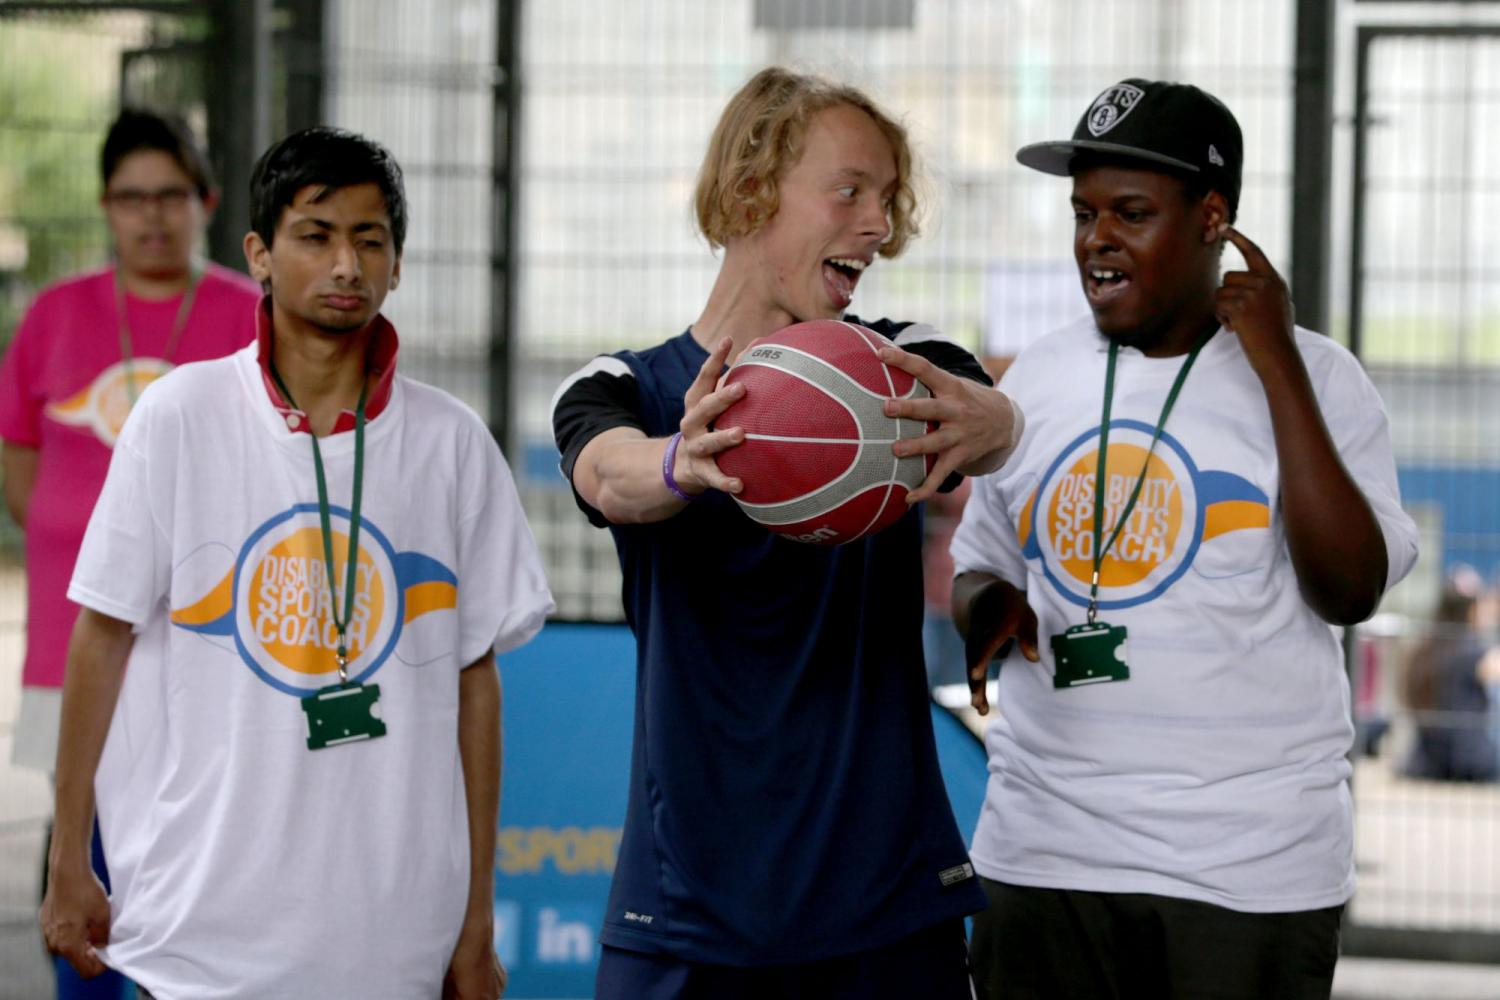 Elearning: Disability Awareness in Sport - disability sports coach